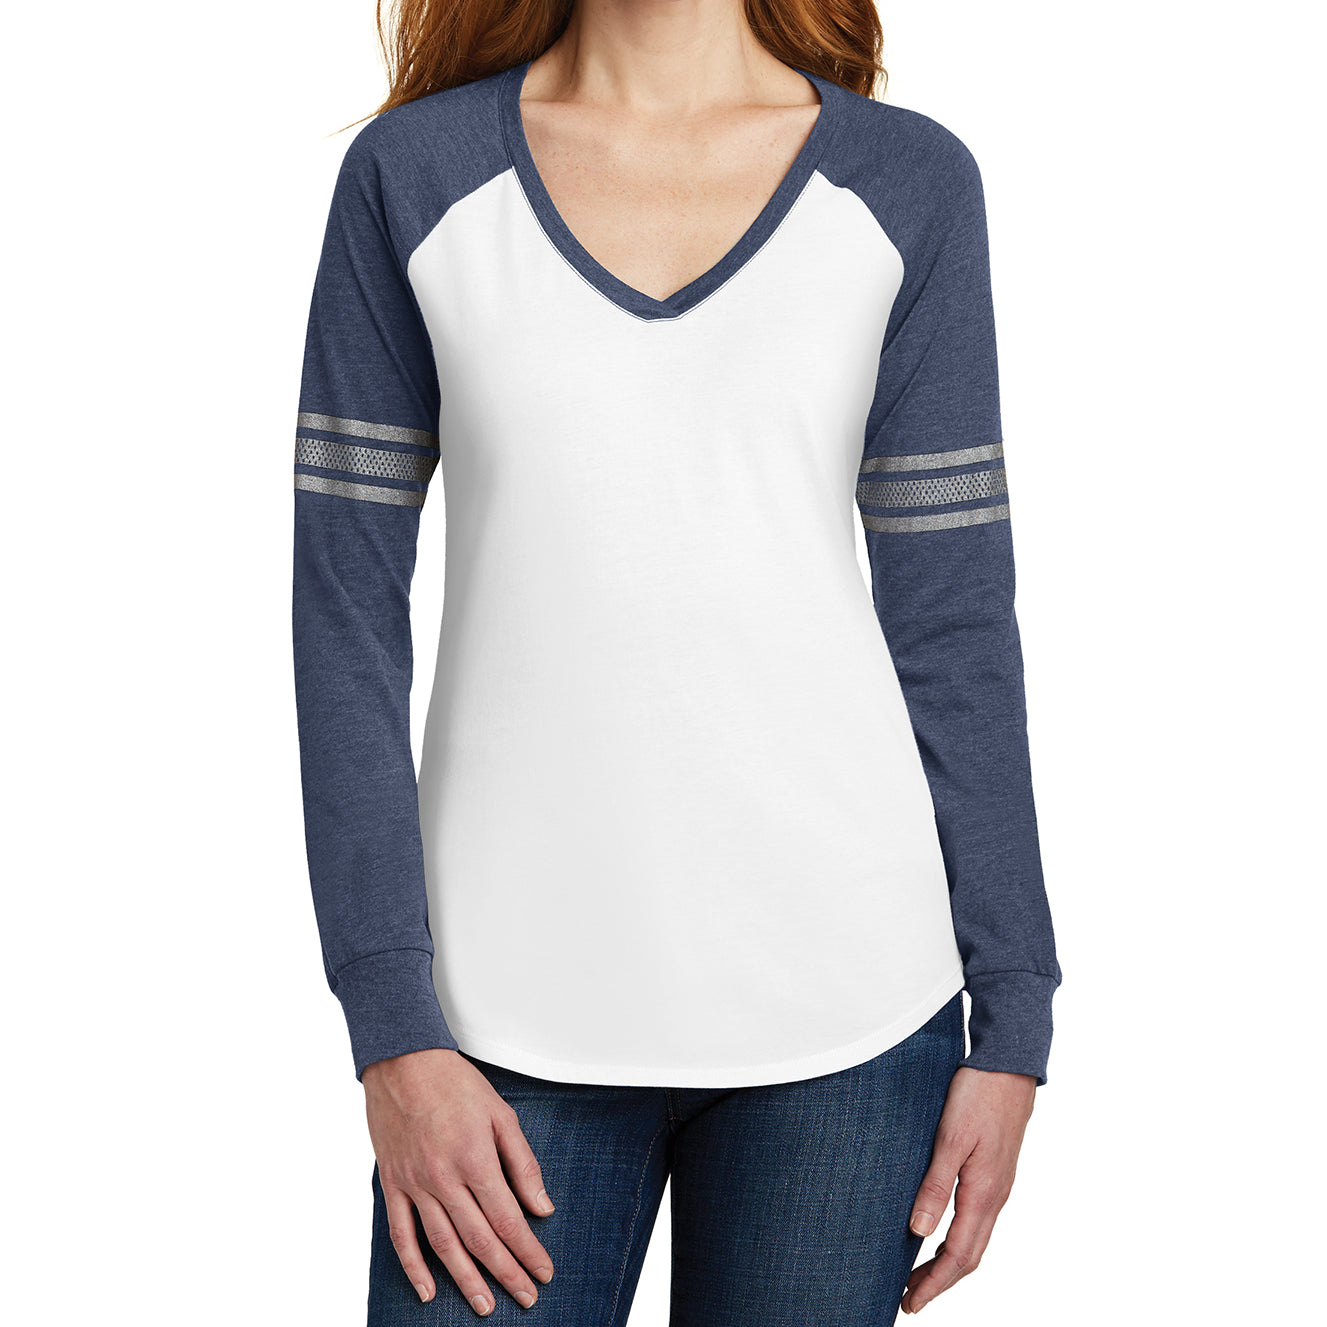 Women's Game Long Sleeve V-Neck Tee - White/ Heathered Navy/ Silver - Front